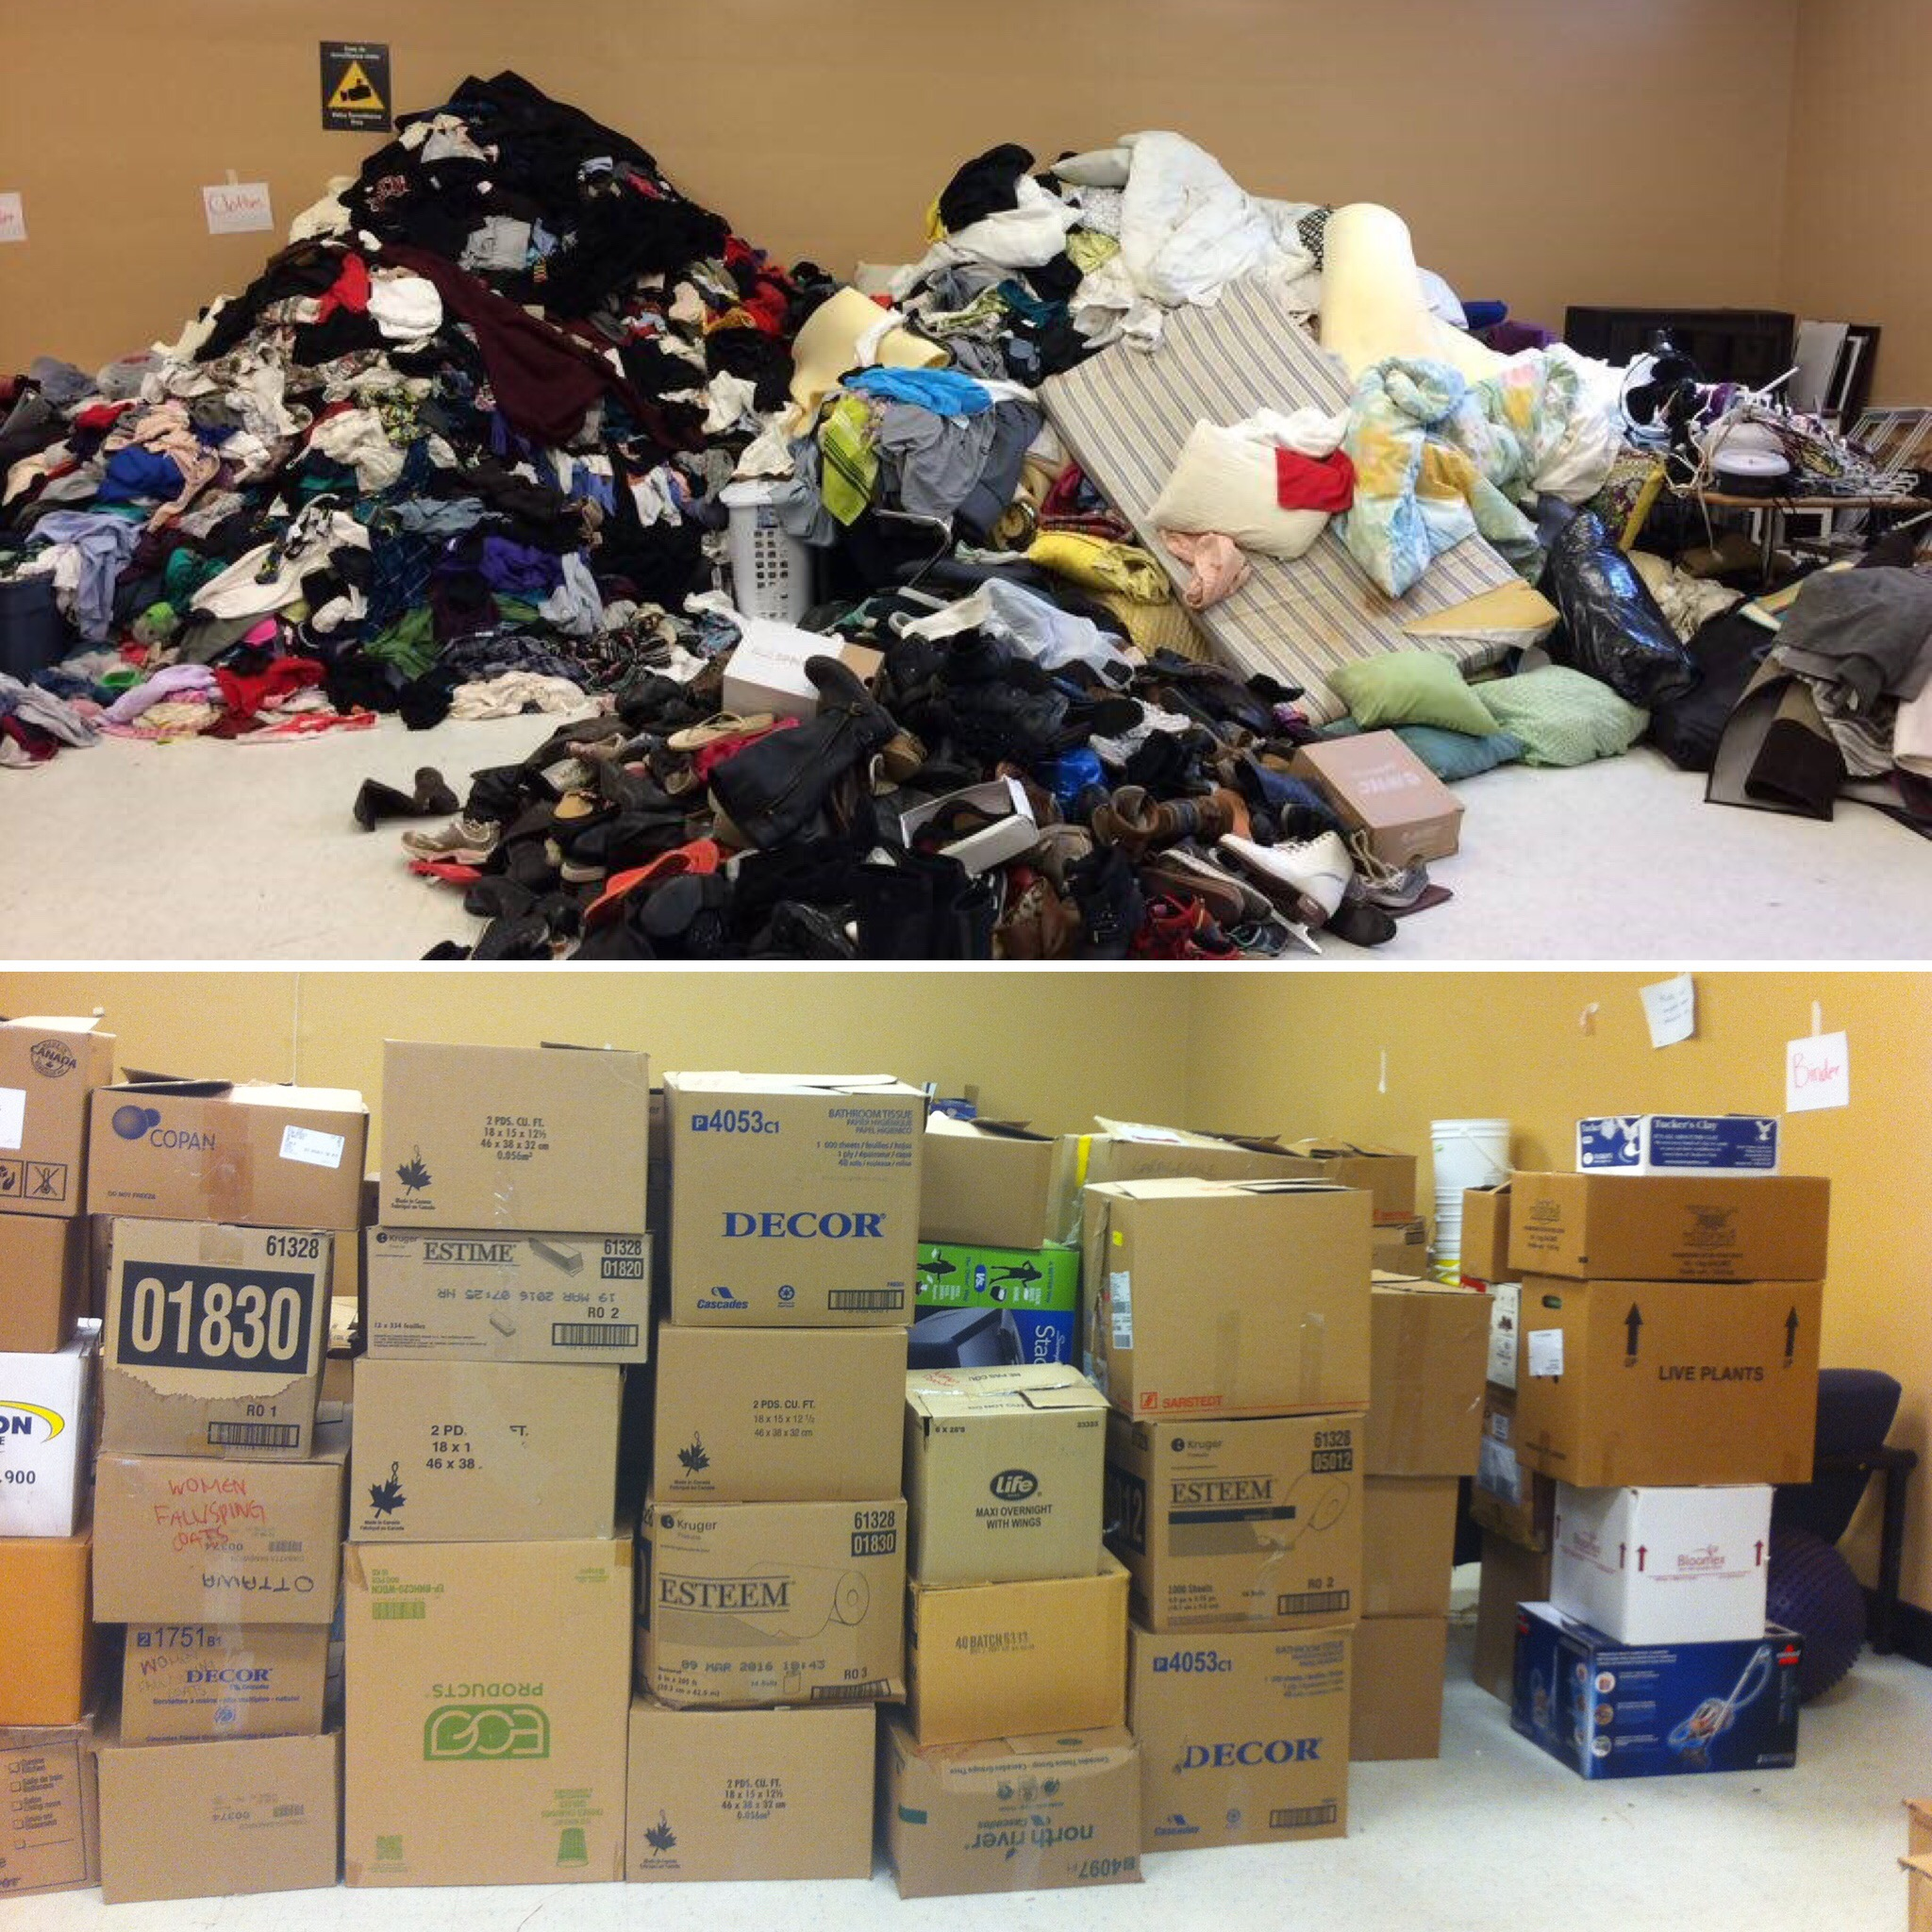 A before-and-after photo of litteral piles of goods then sorted neatly into stacked boxes